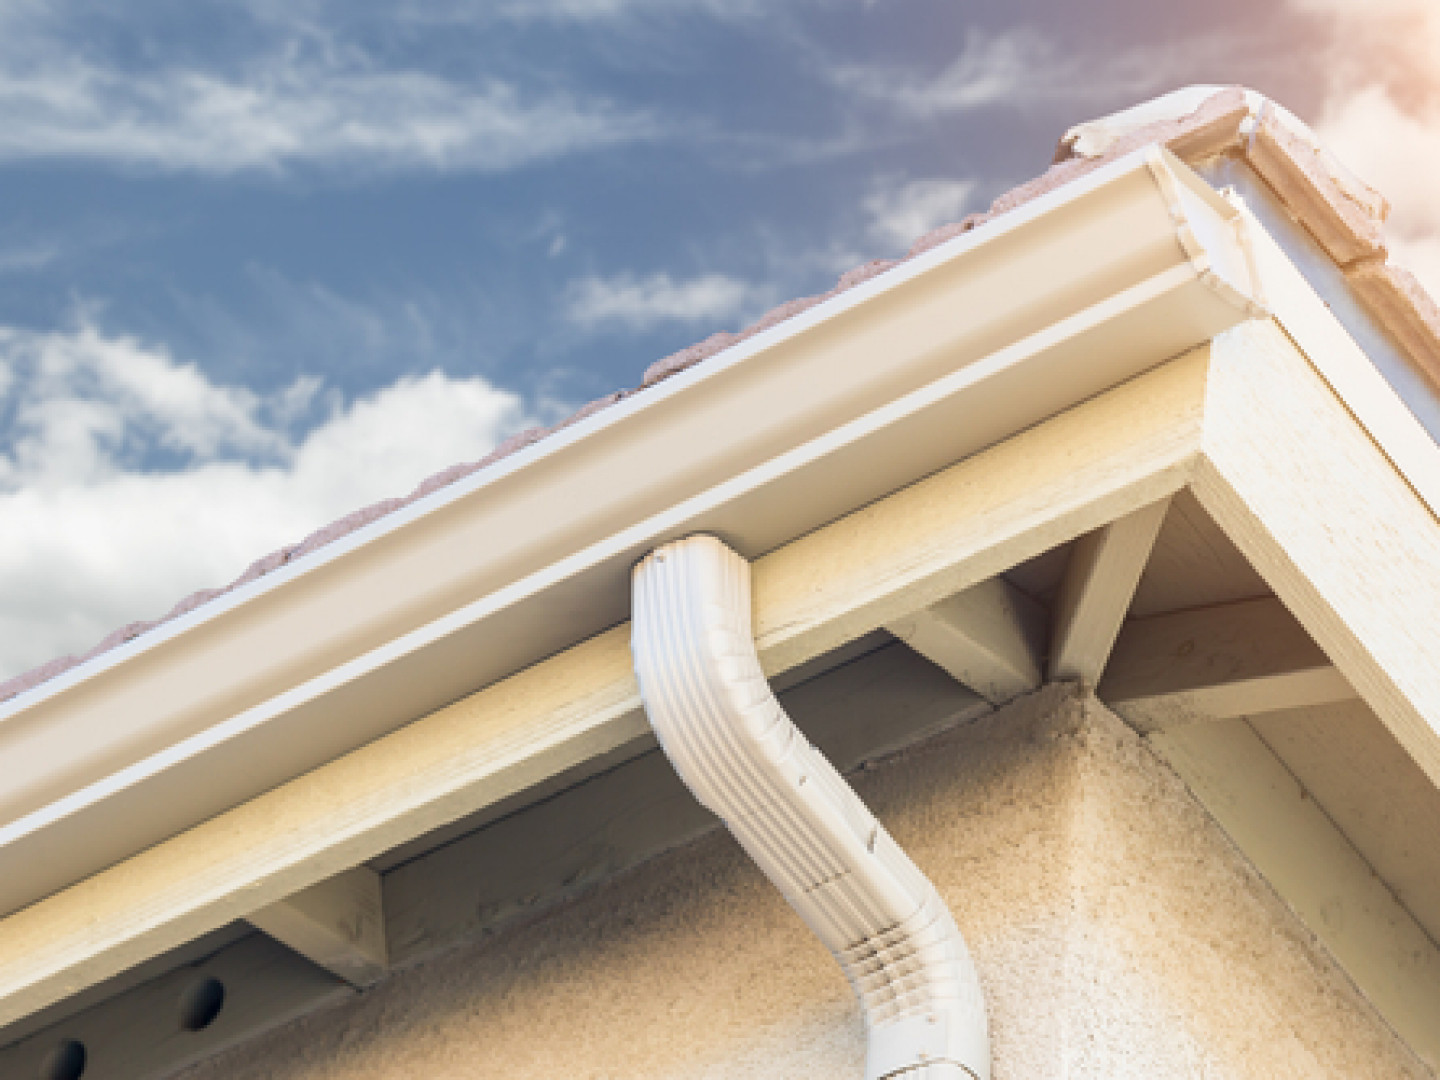 Replace Your Old Gutters With New Aluminum Seamless Gutters